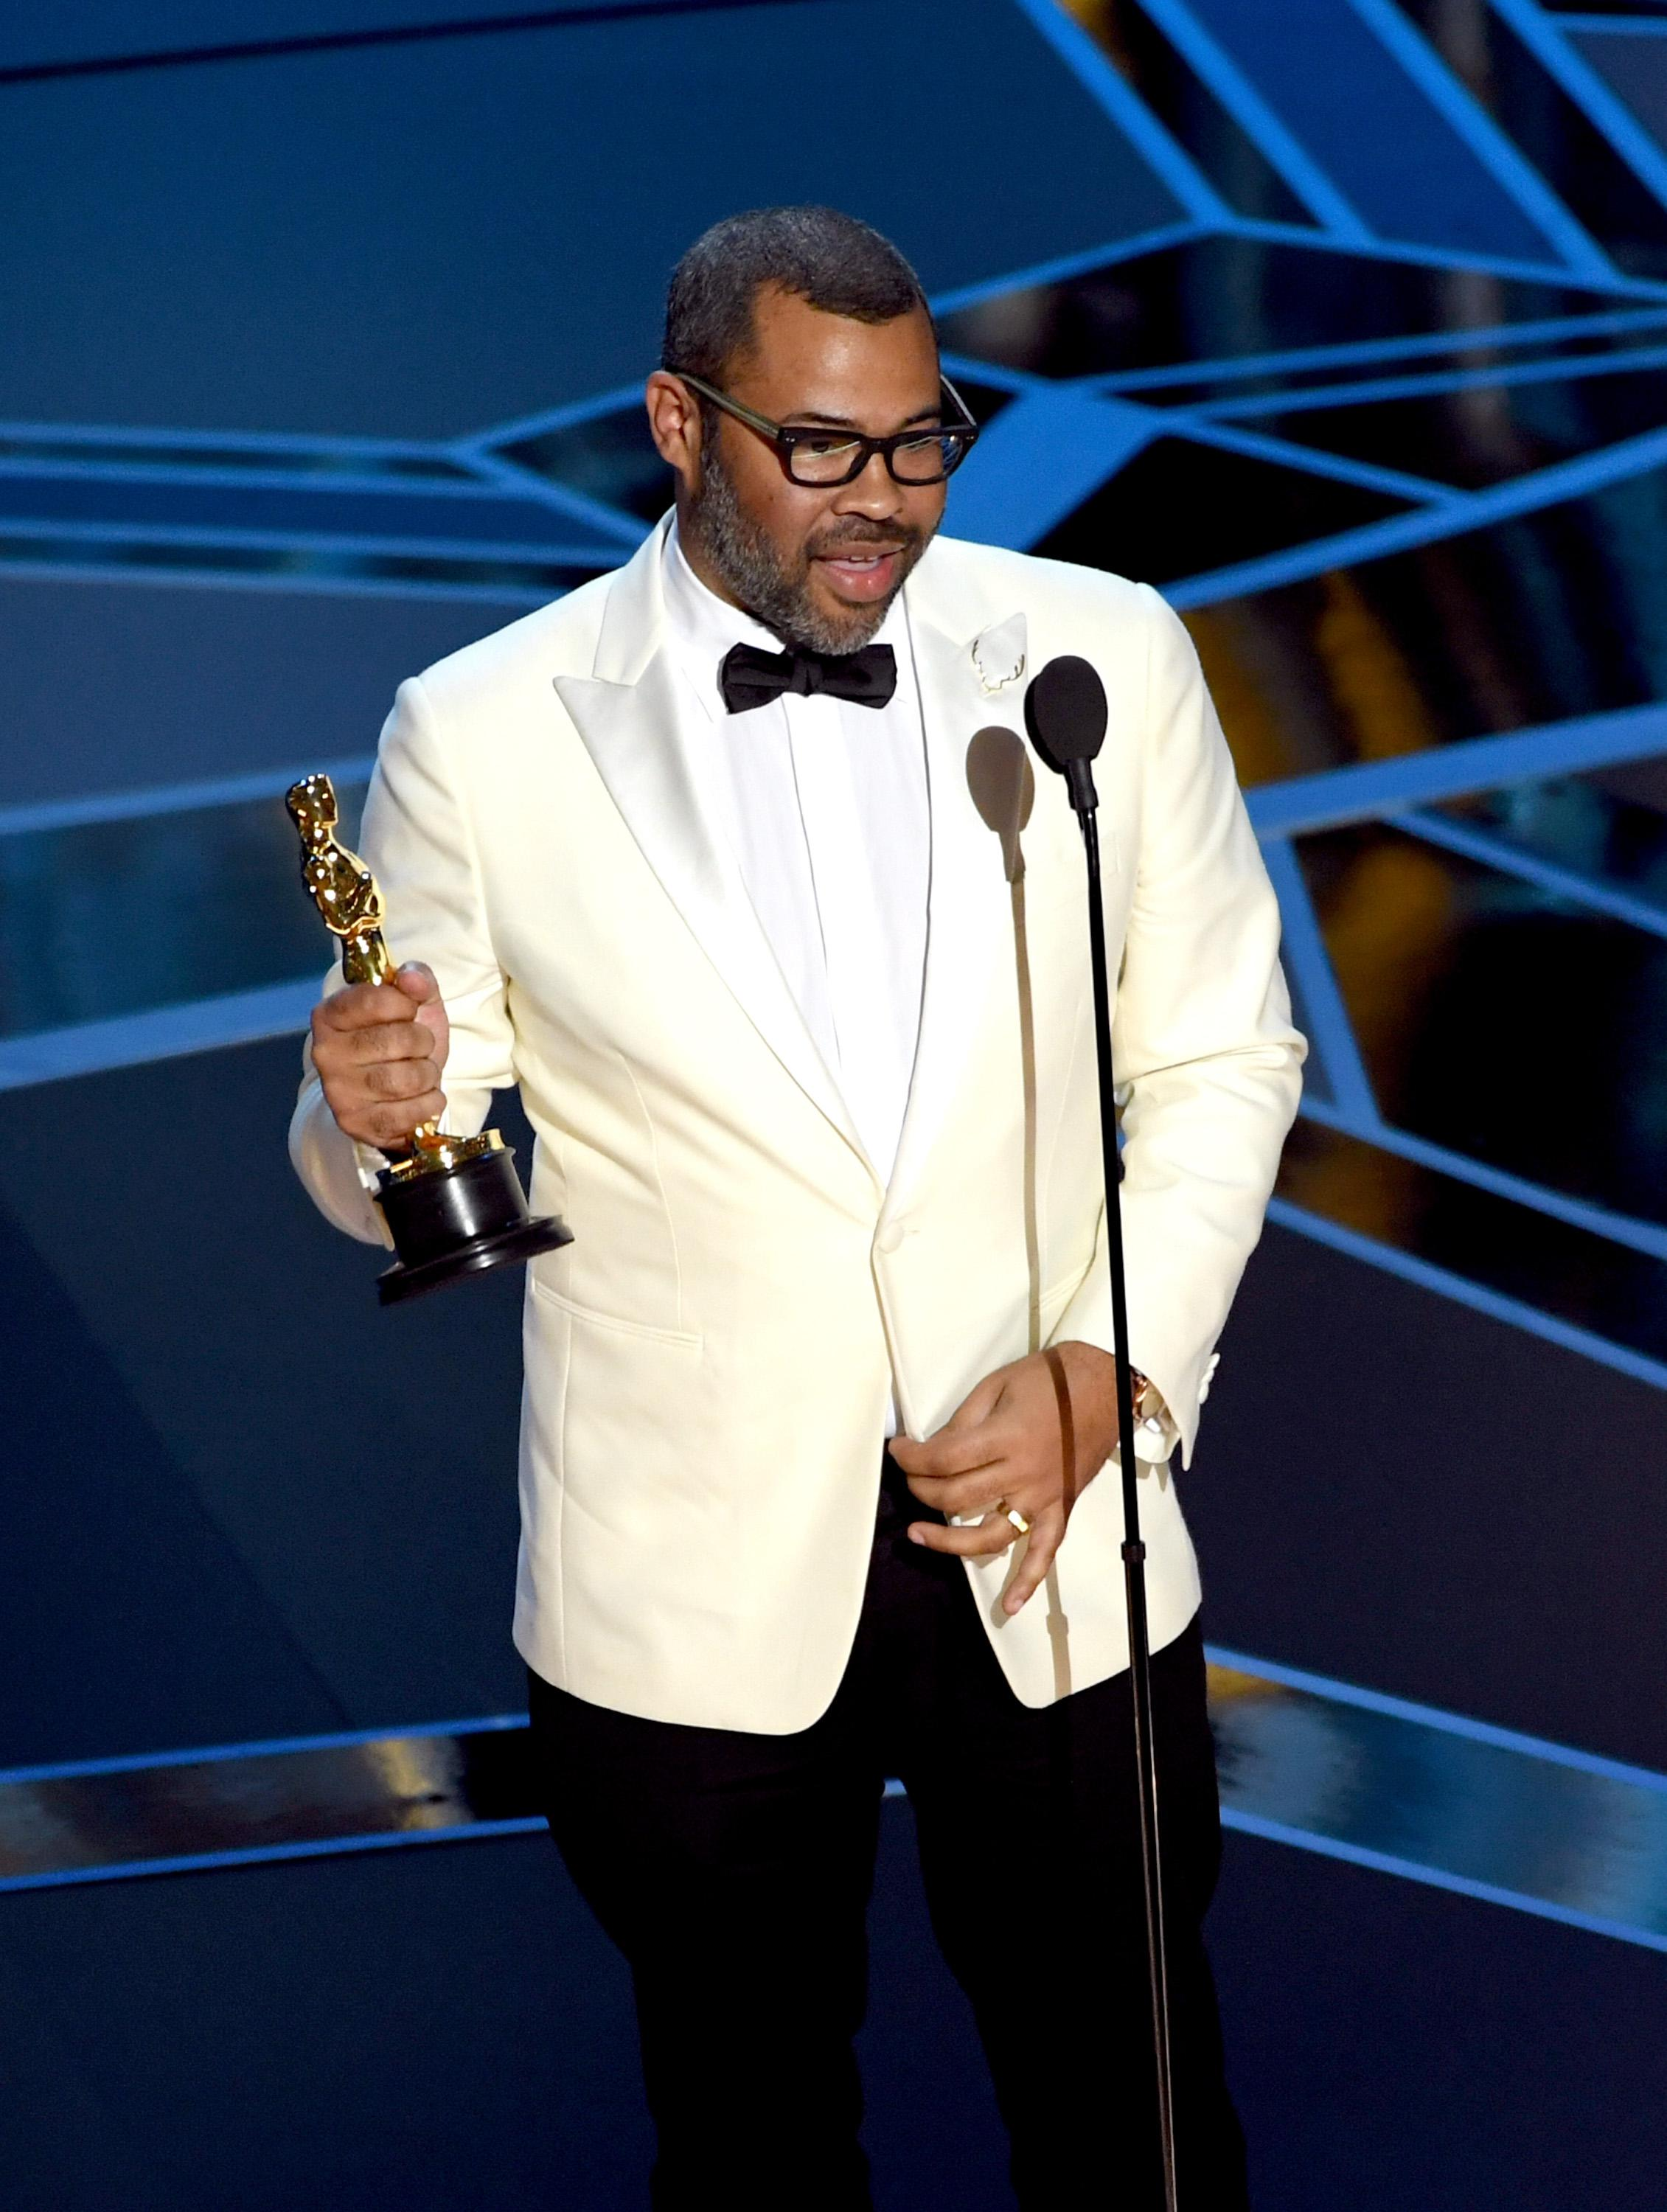 Writer/director Jordan Peele accepts Best Original Screenplay for 'Get Out' onstage during the 90th Annual Academy Awards at the Dolby Theatre at Hollywood & Highland Center on March 4, 2018 in Hollywood, California.  (Photo by Kevin Winter/Getty Images)